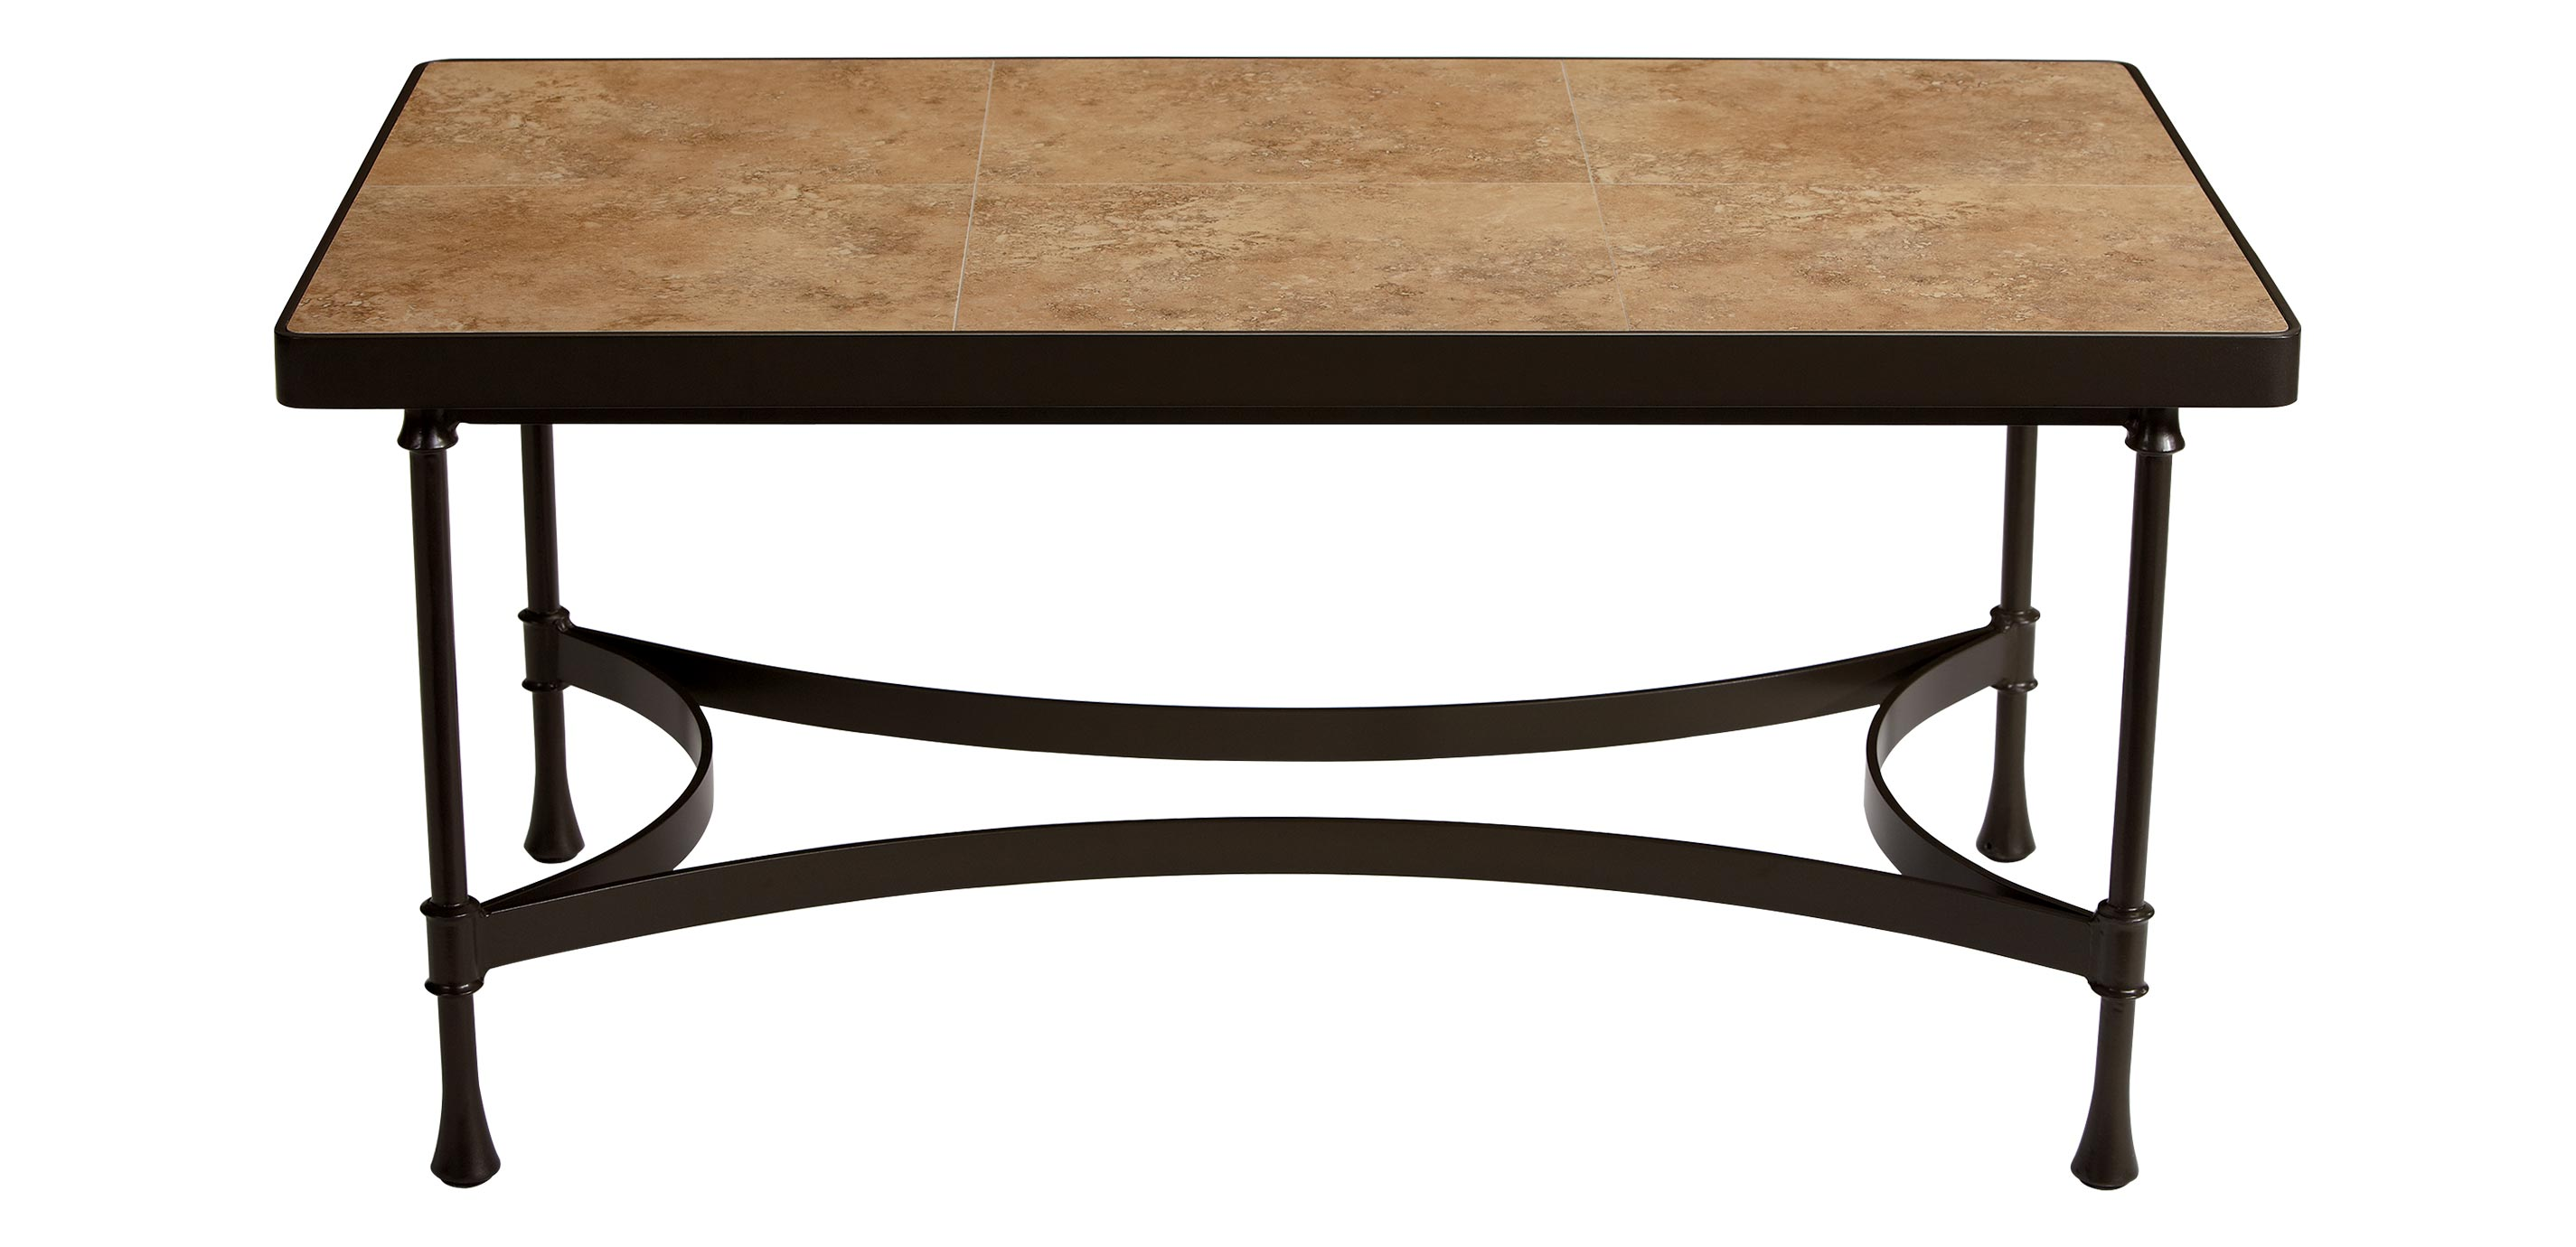 Biscayne Coffee Table With Light Porcelain Top Biscayne Collection